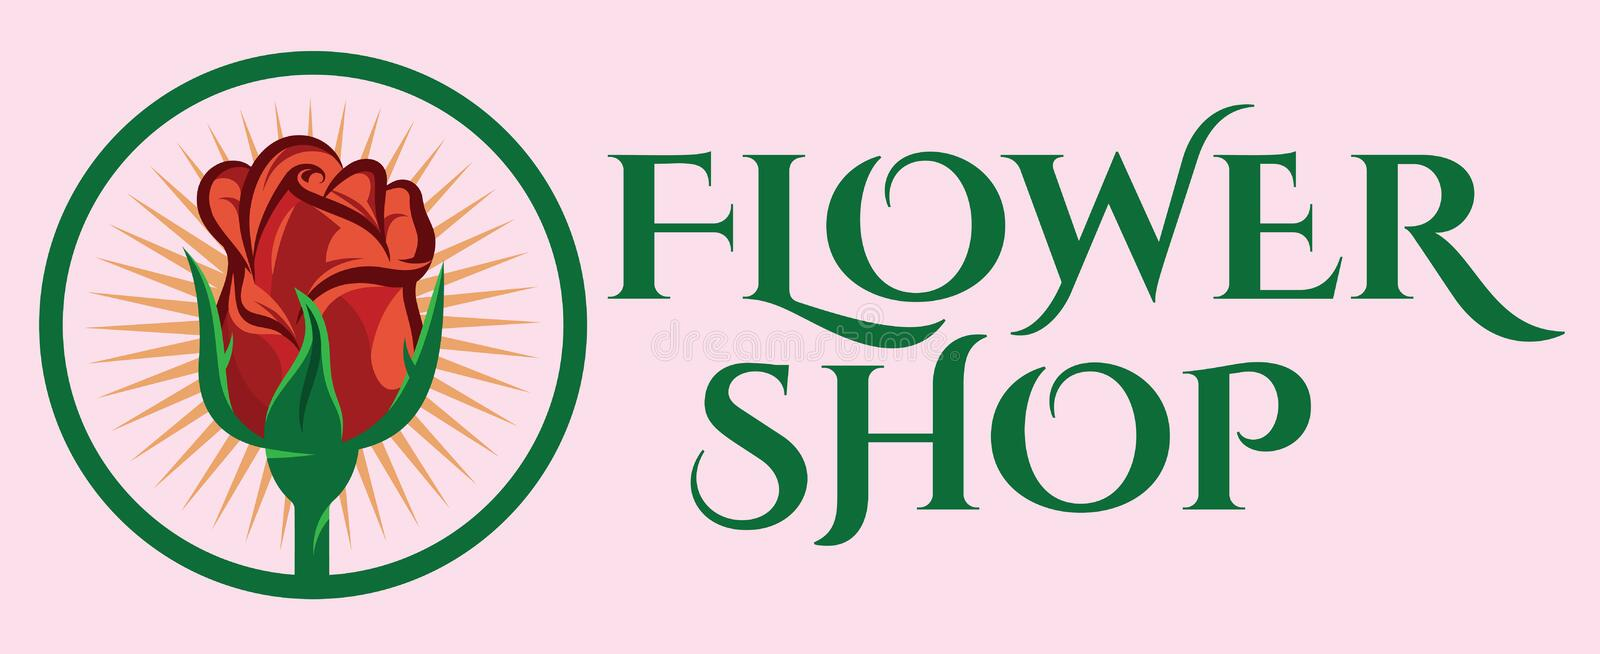 Color vector template for flower shop with rose royalty free illustration